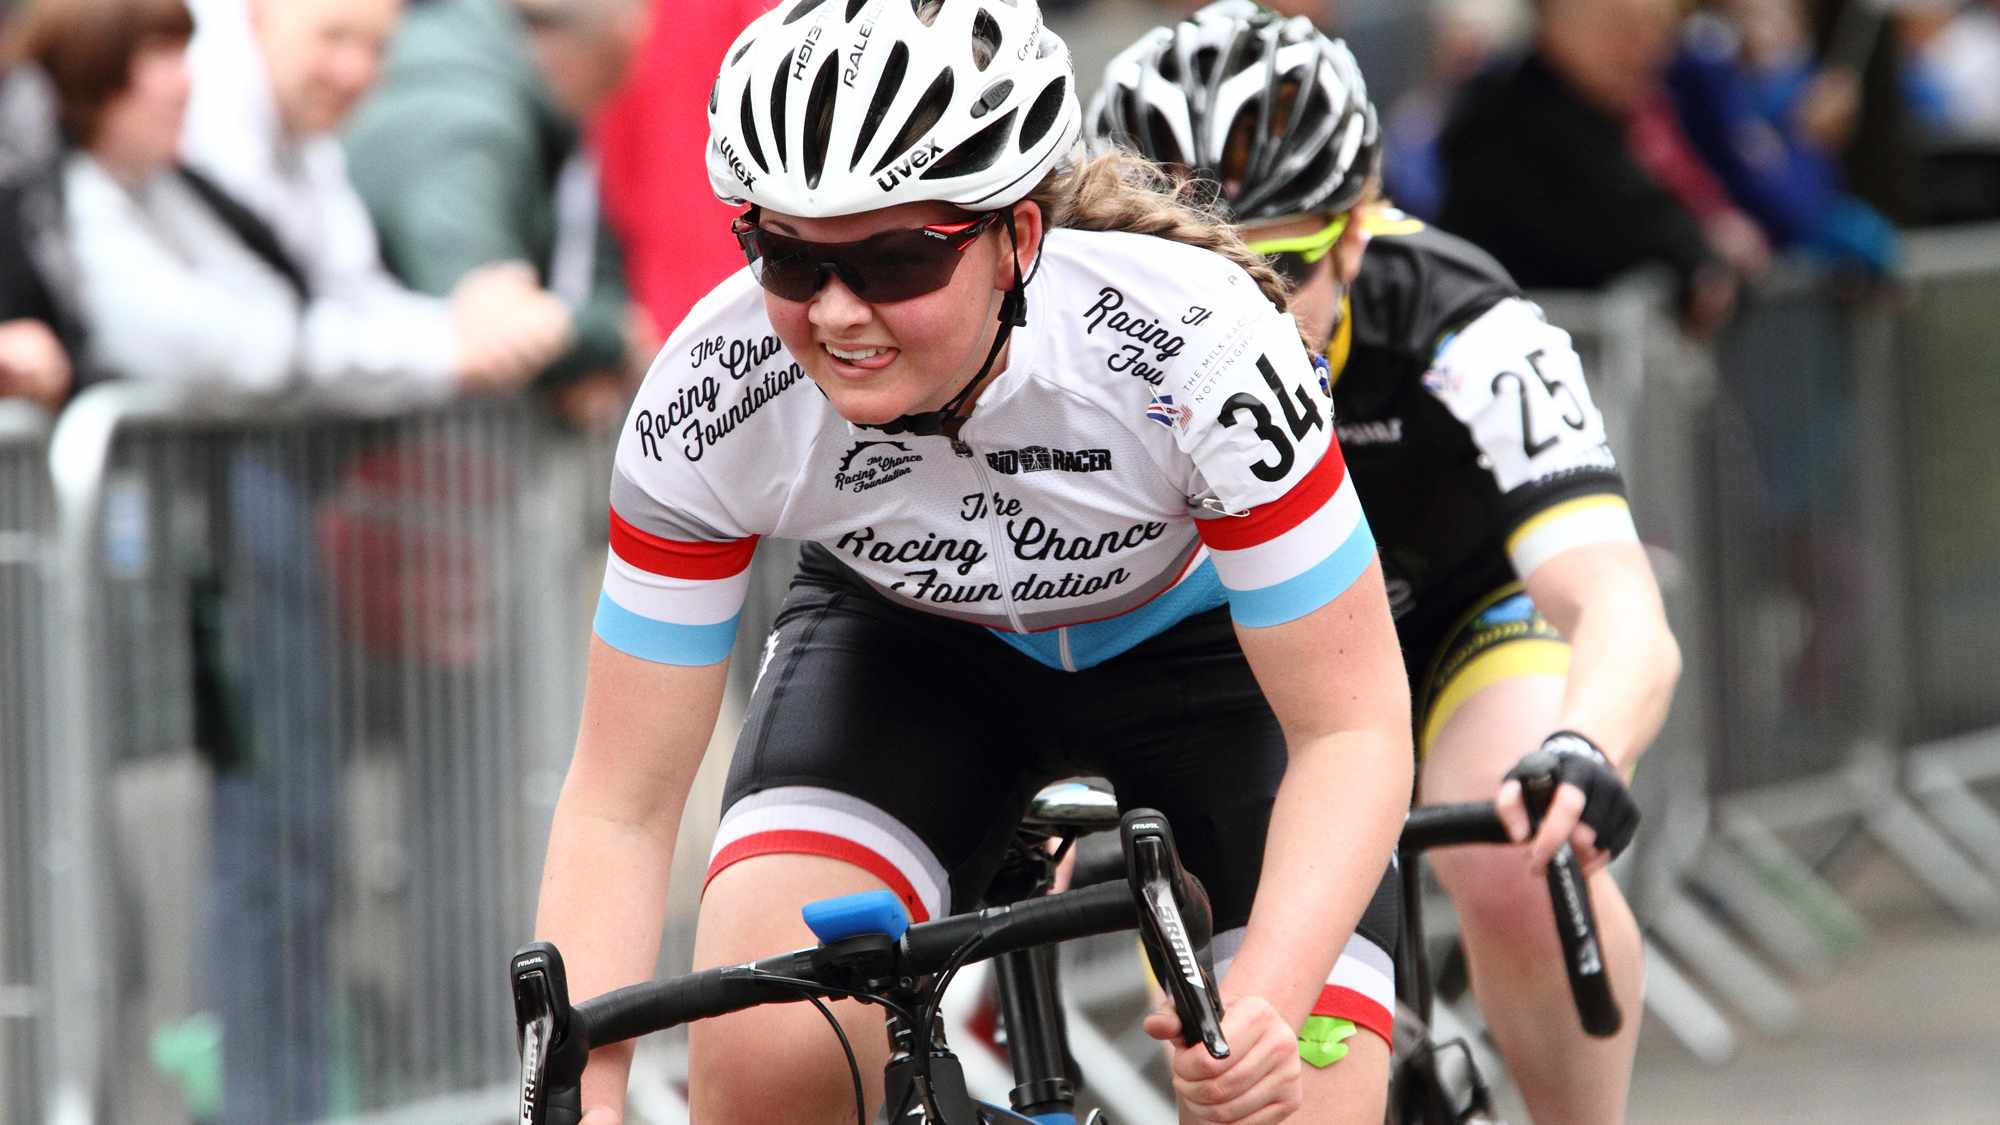 Cycle racing is the ideal way to push your skills, training and fitness to the next level